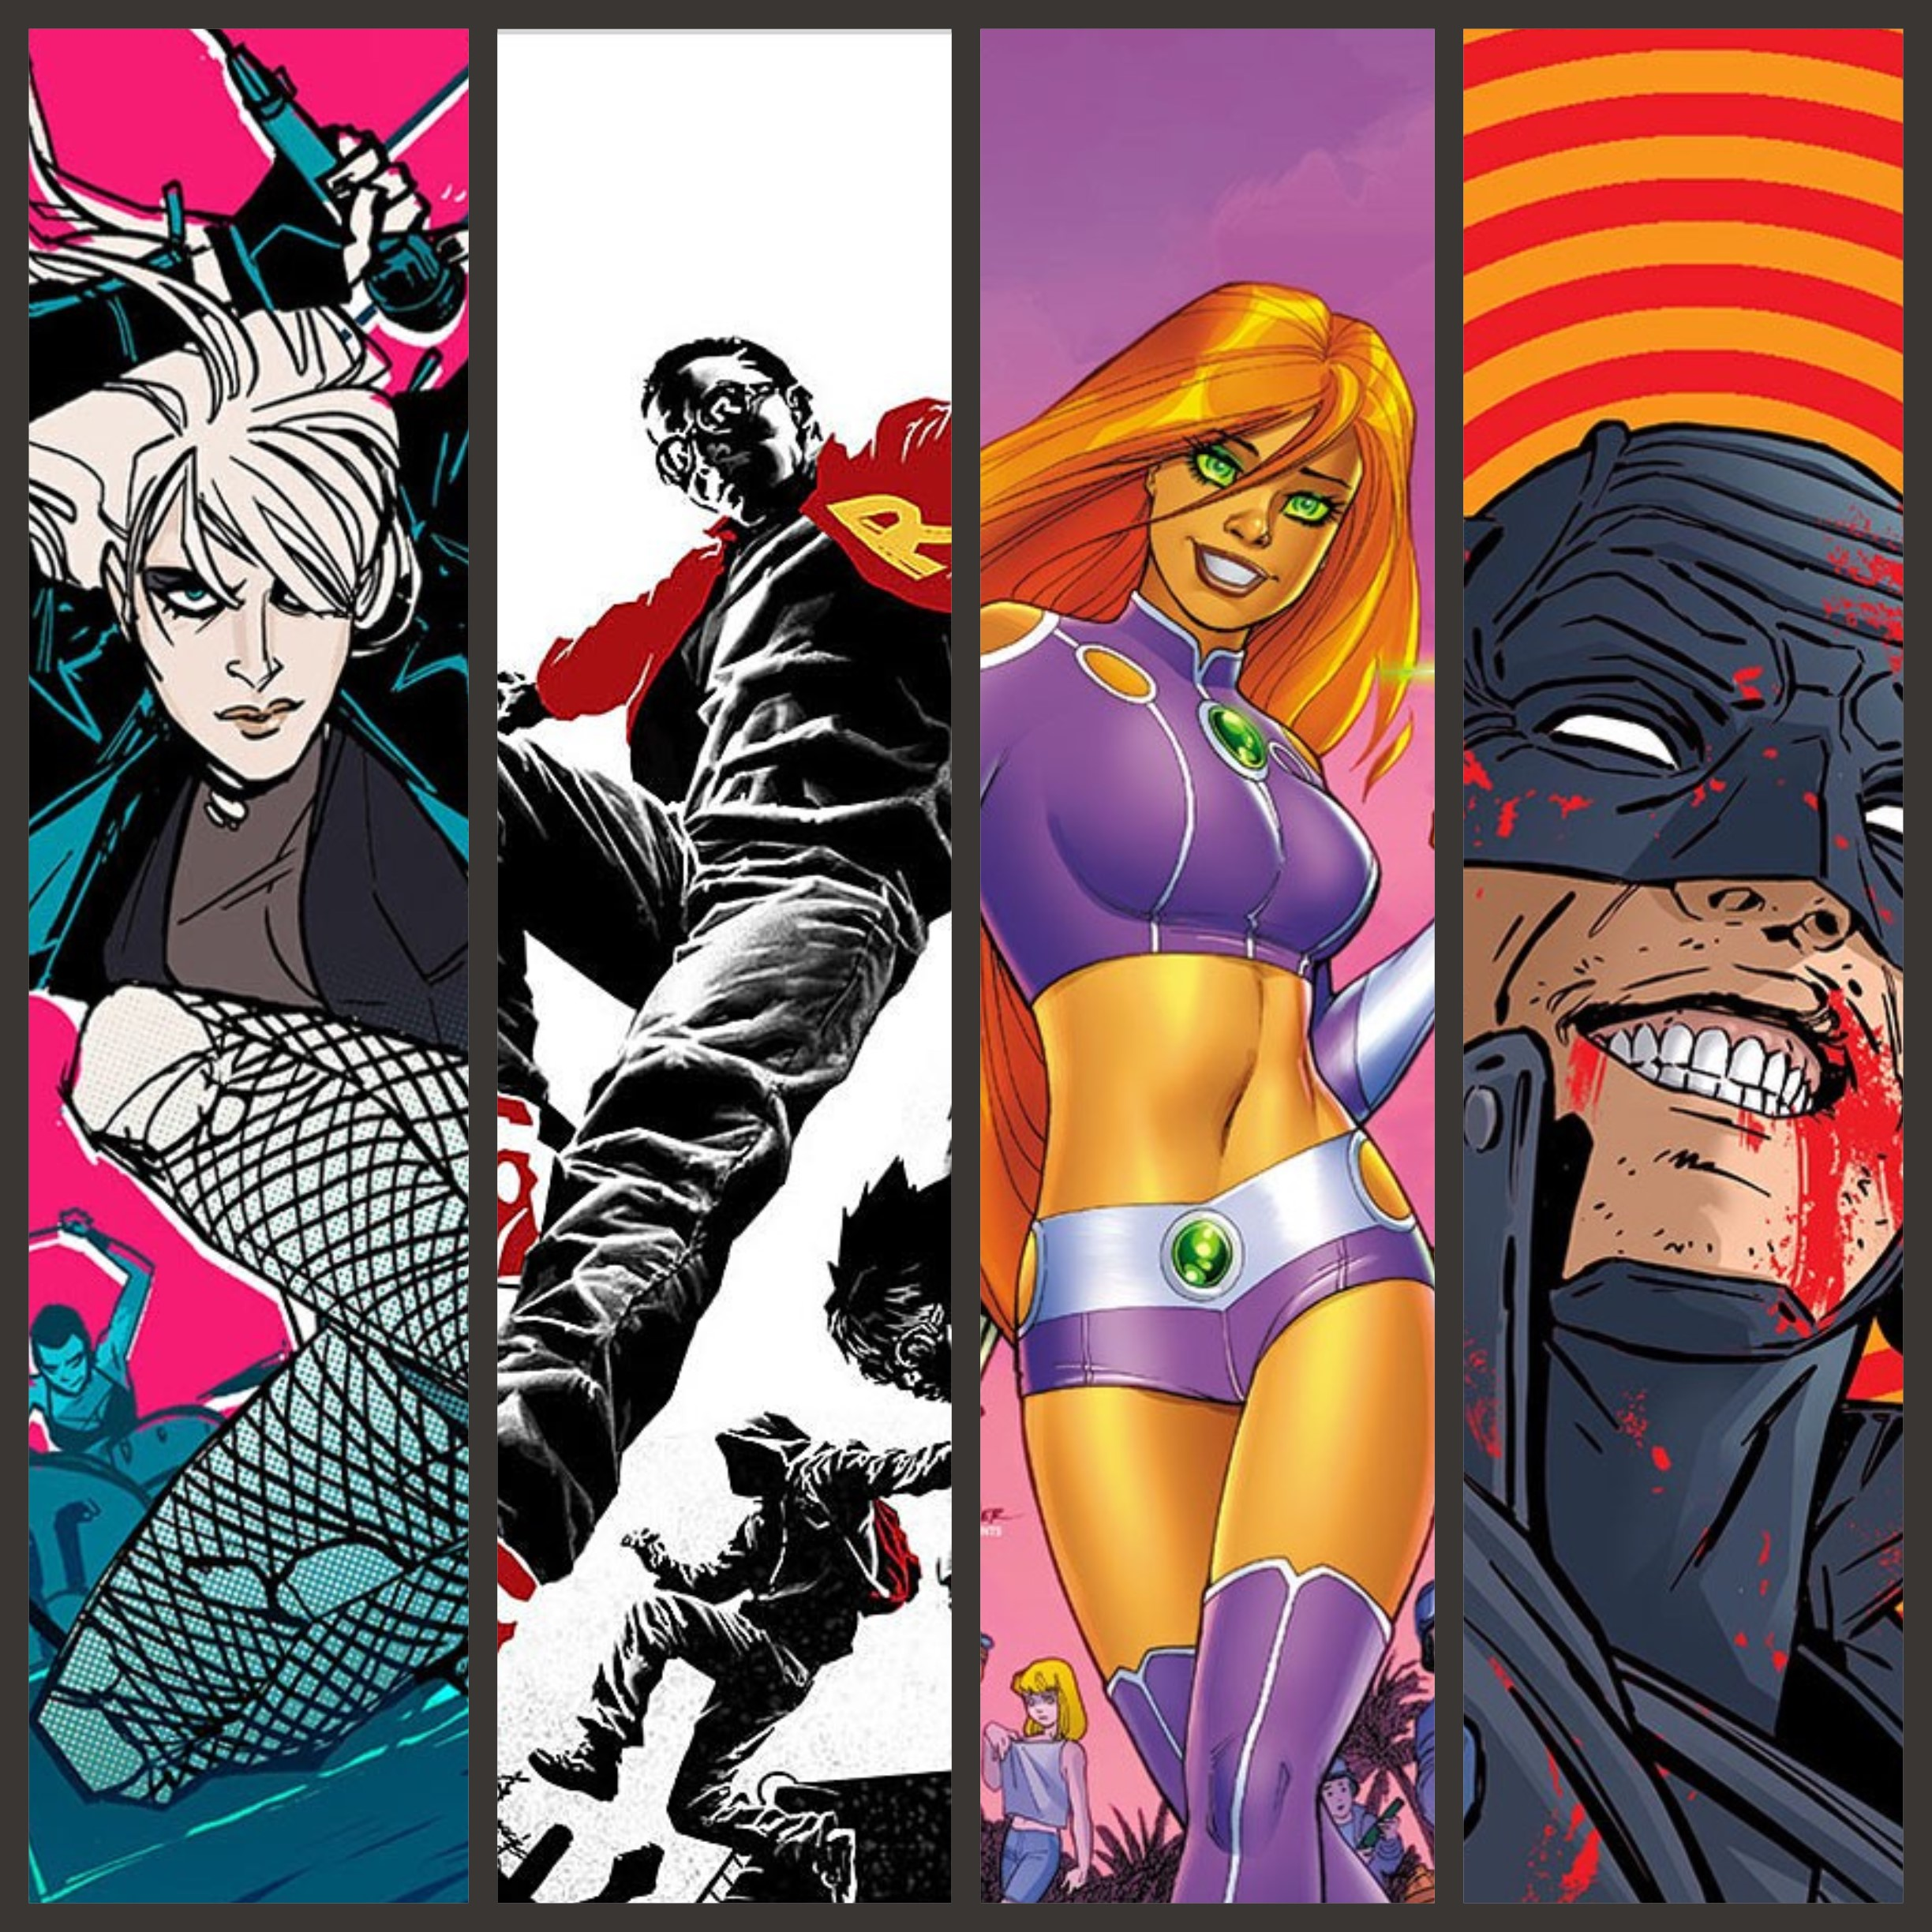 The New 52 is dead: DC Comics details diverse, character-driven new direction